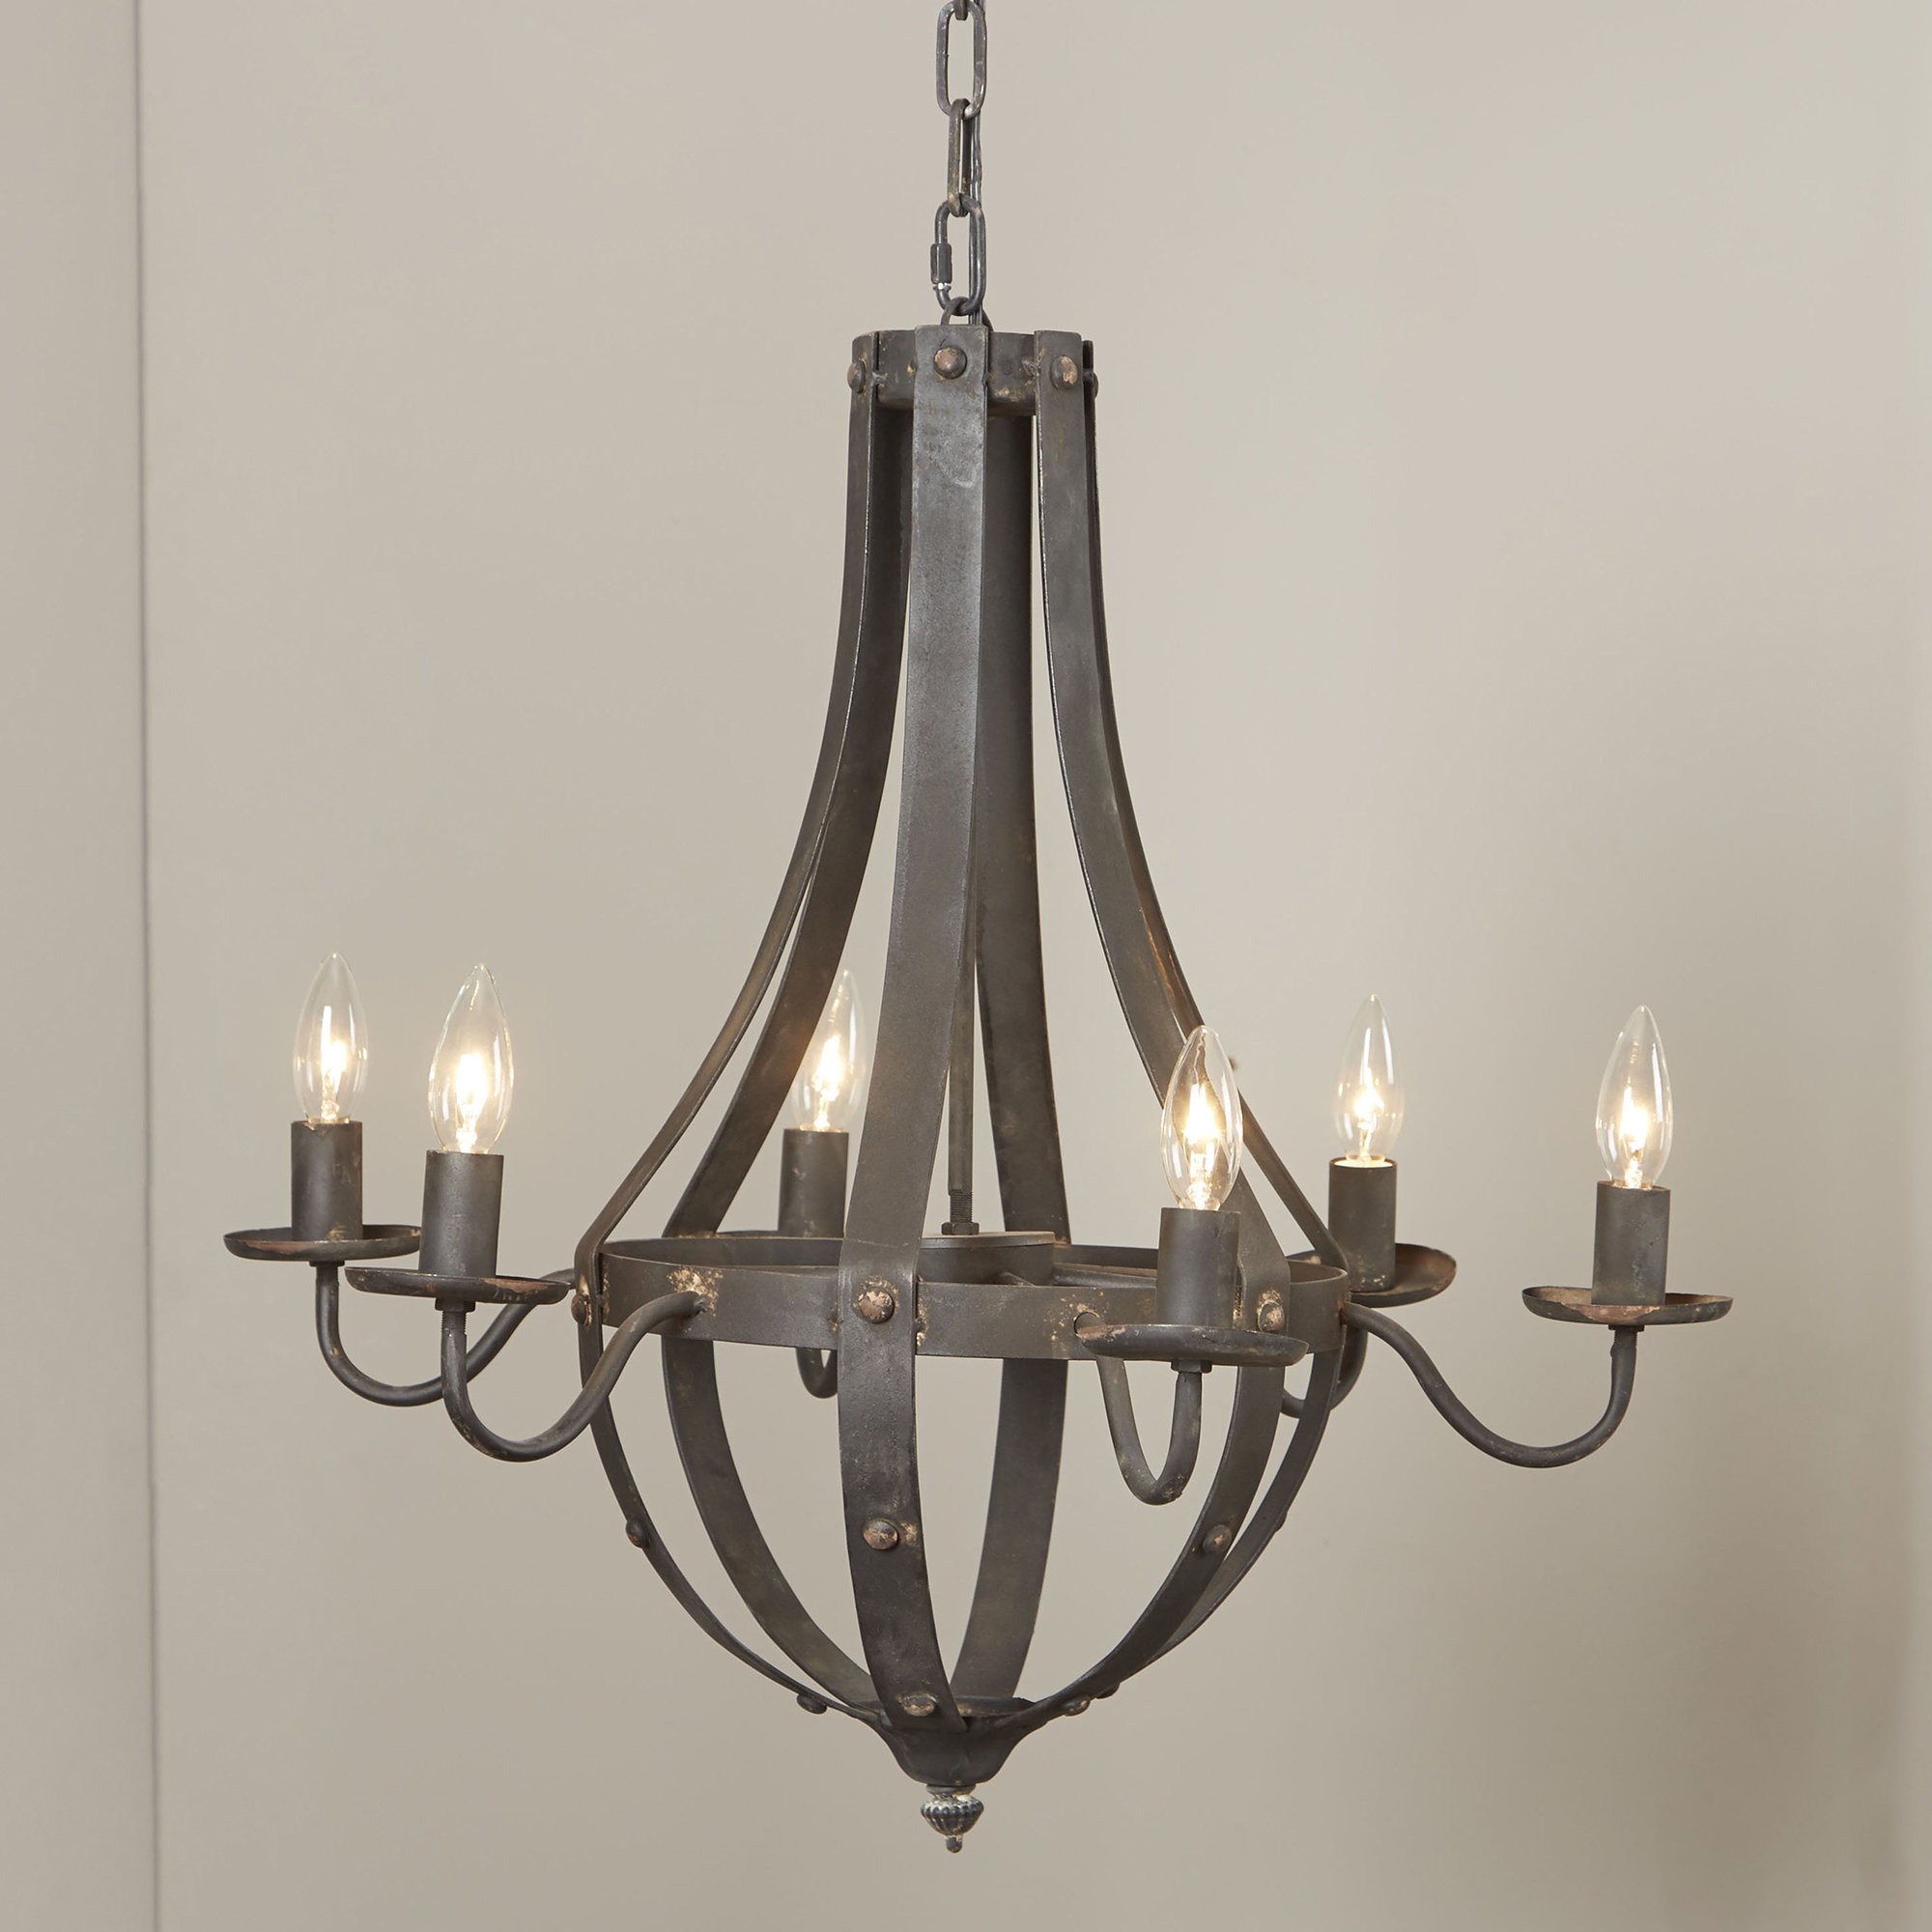 Shaylee 6 Light Candle Style Chandeliers Inside Most Up To Date Foulds 6 Light Empire Chandelier (View 15 of 20)